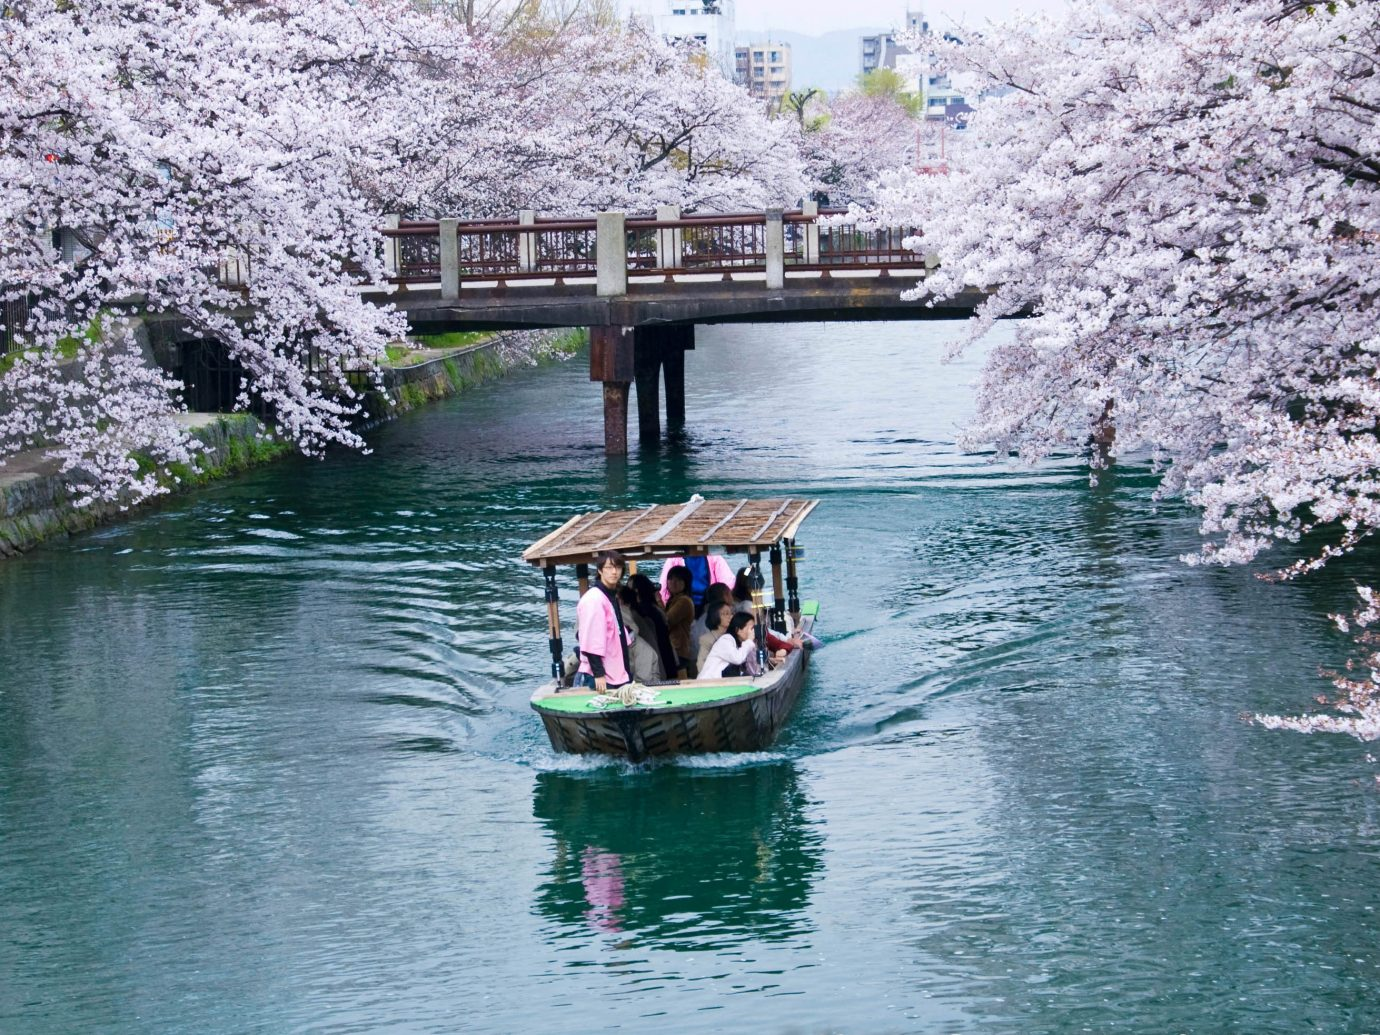 Trip Ideas water outdoor flower cherry blossom plant River traveling blossom waterway Lake